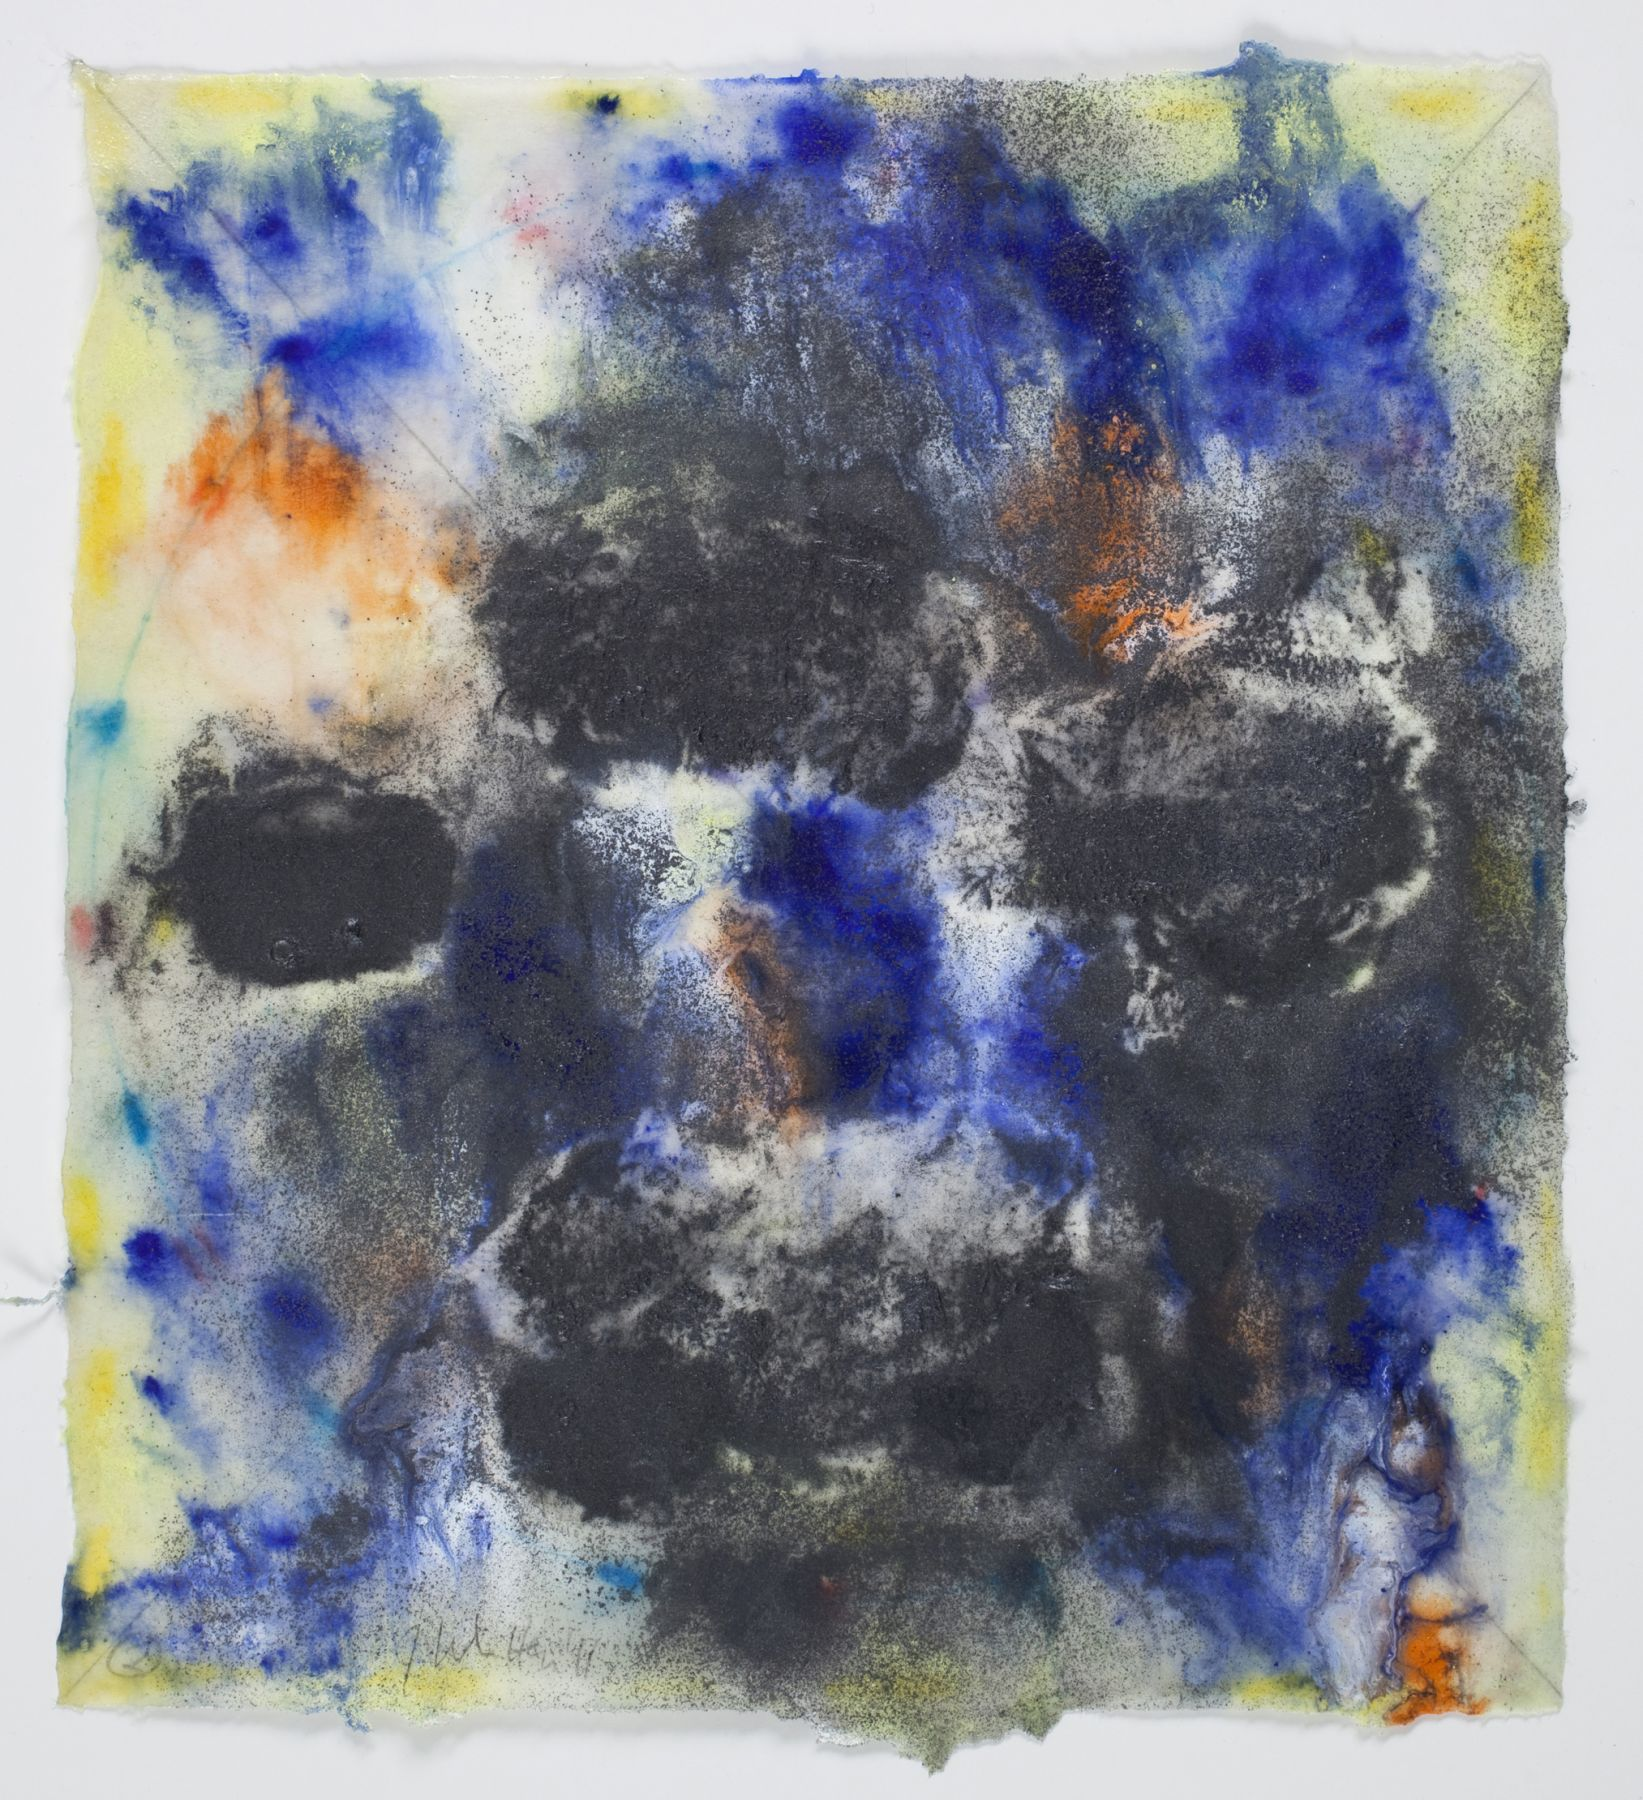 Saturation #2, 2011, Mixed Media On Paper